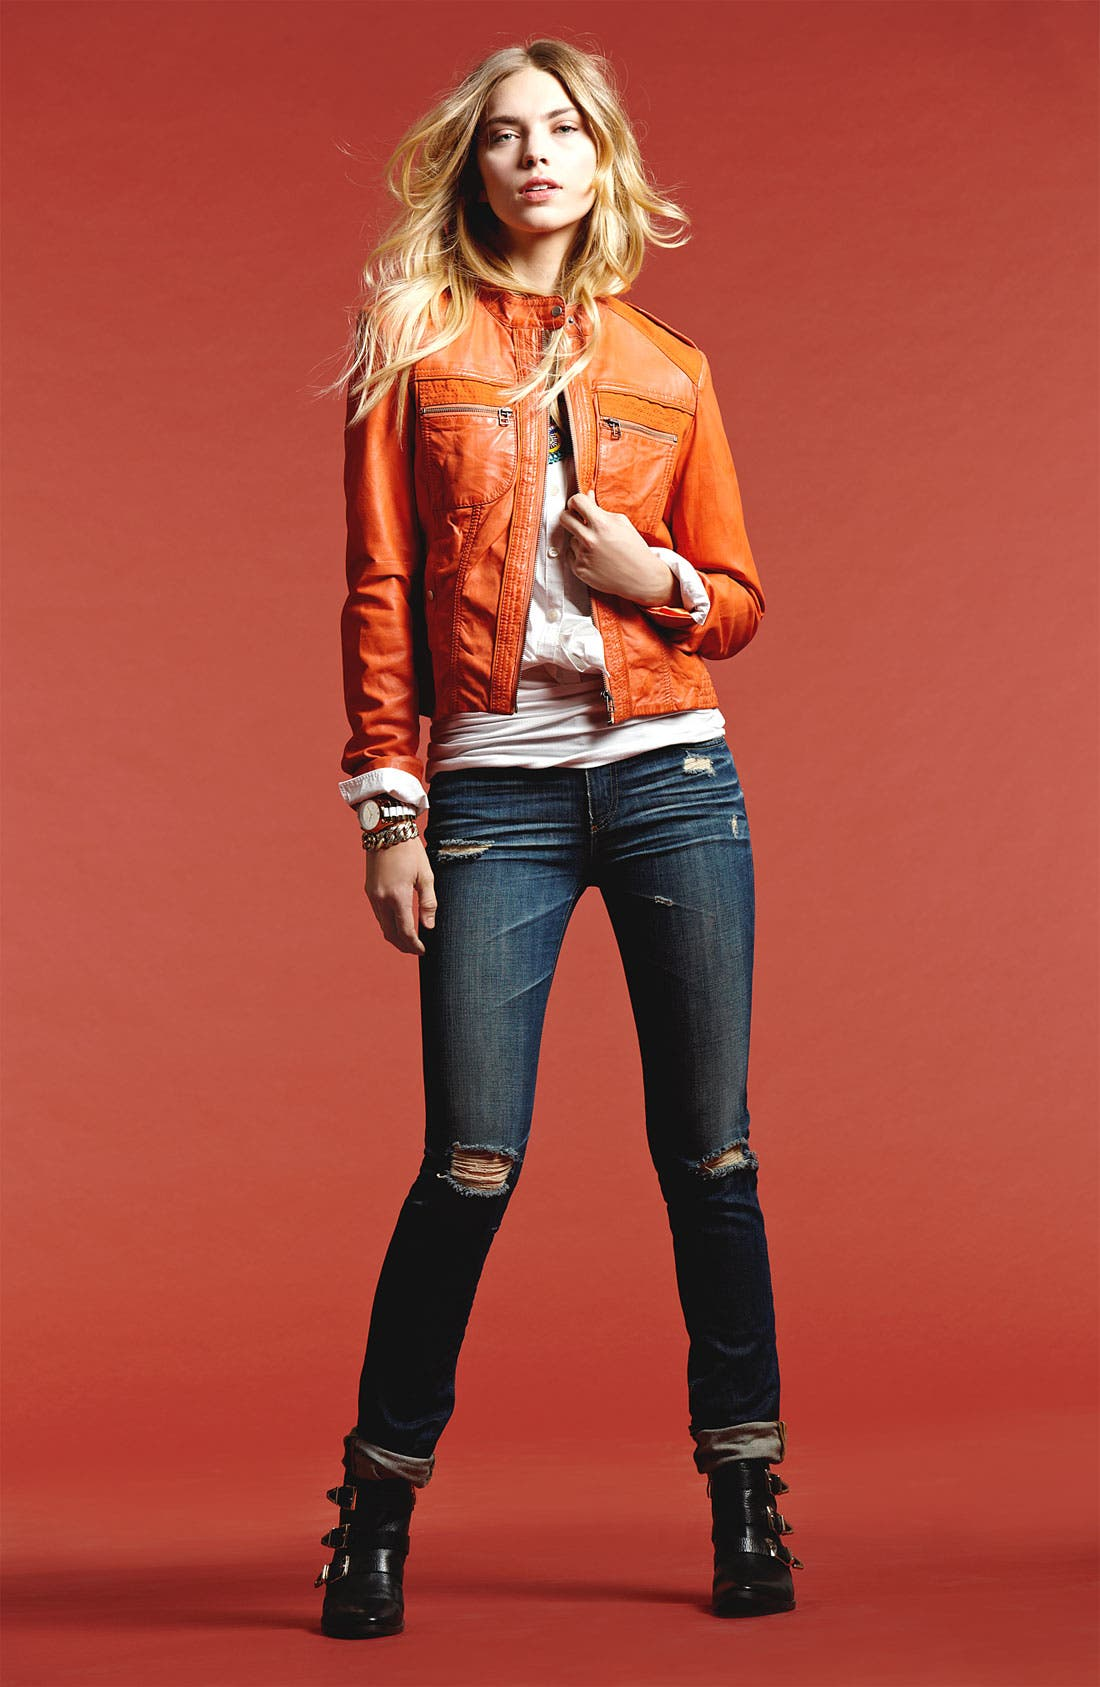 Alternate Image 1 Selected - Bernardo Jacket, Caslon® Shirt, Stem Tank & AG Jeans